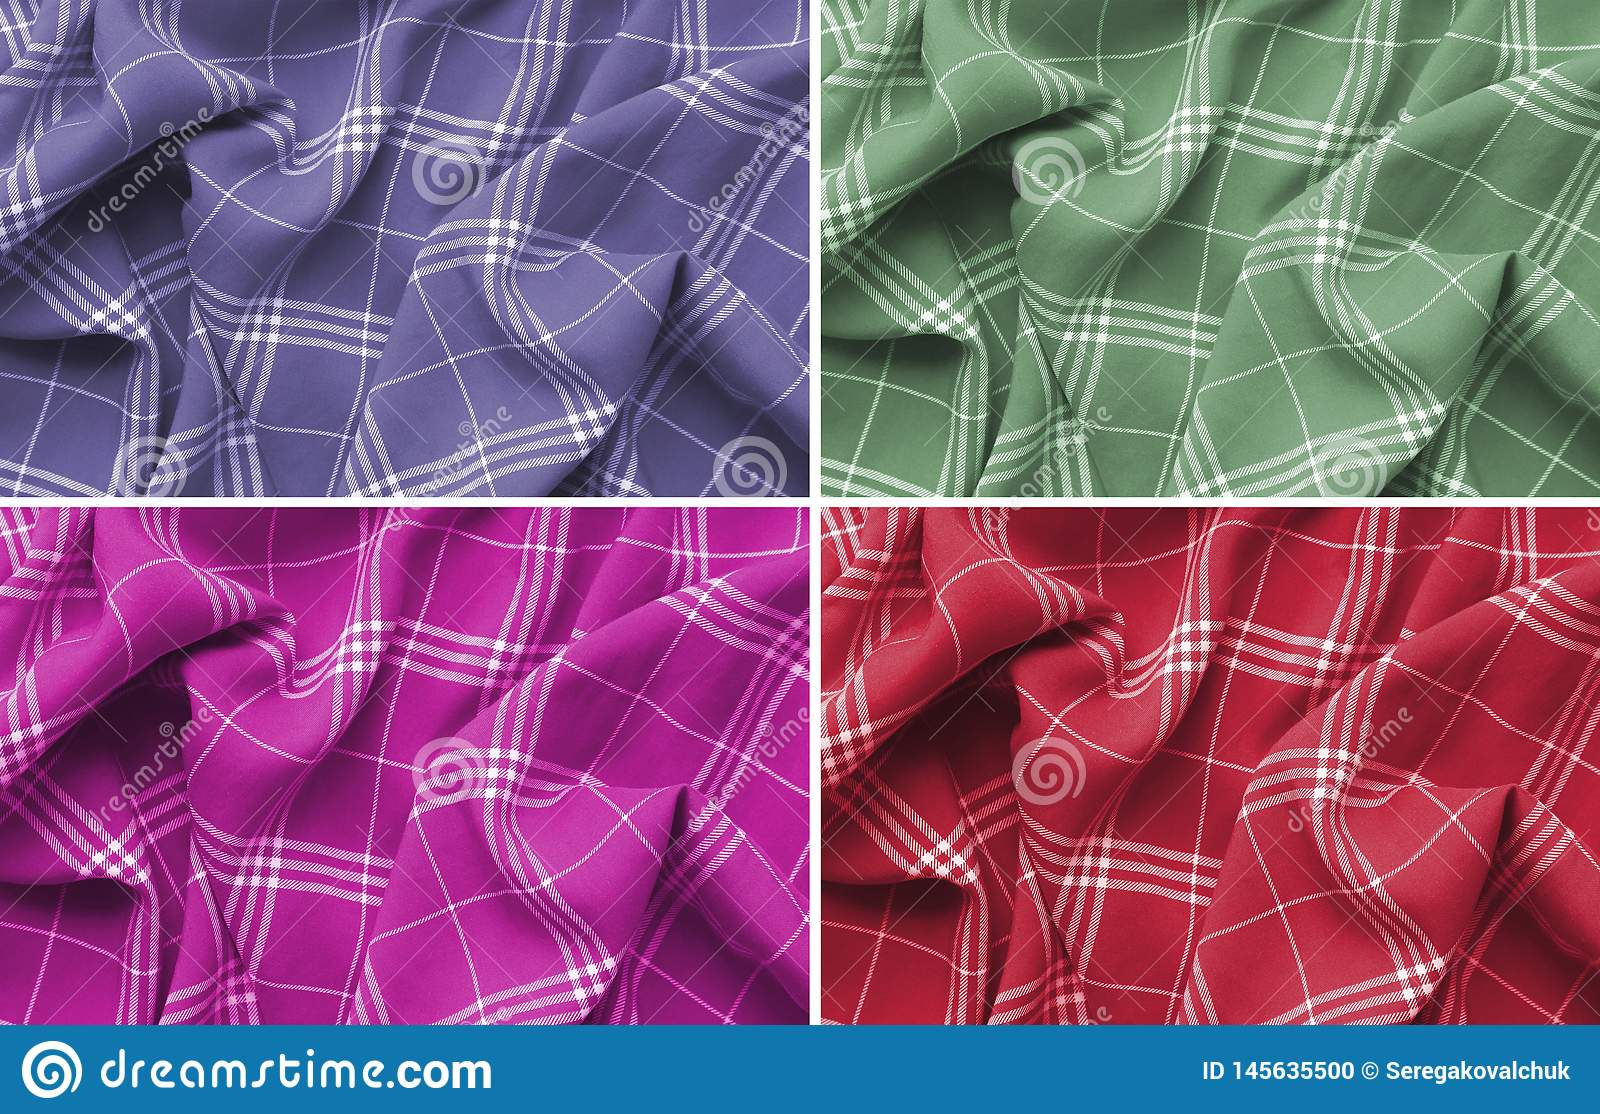 Collage of pink,purple,green and red checkered plaid clothes material. Close up macro view.Cloth background.Scottish pattern